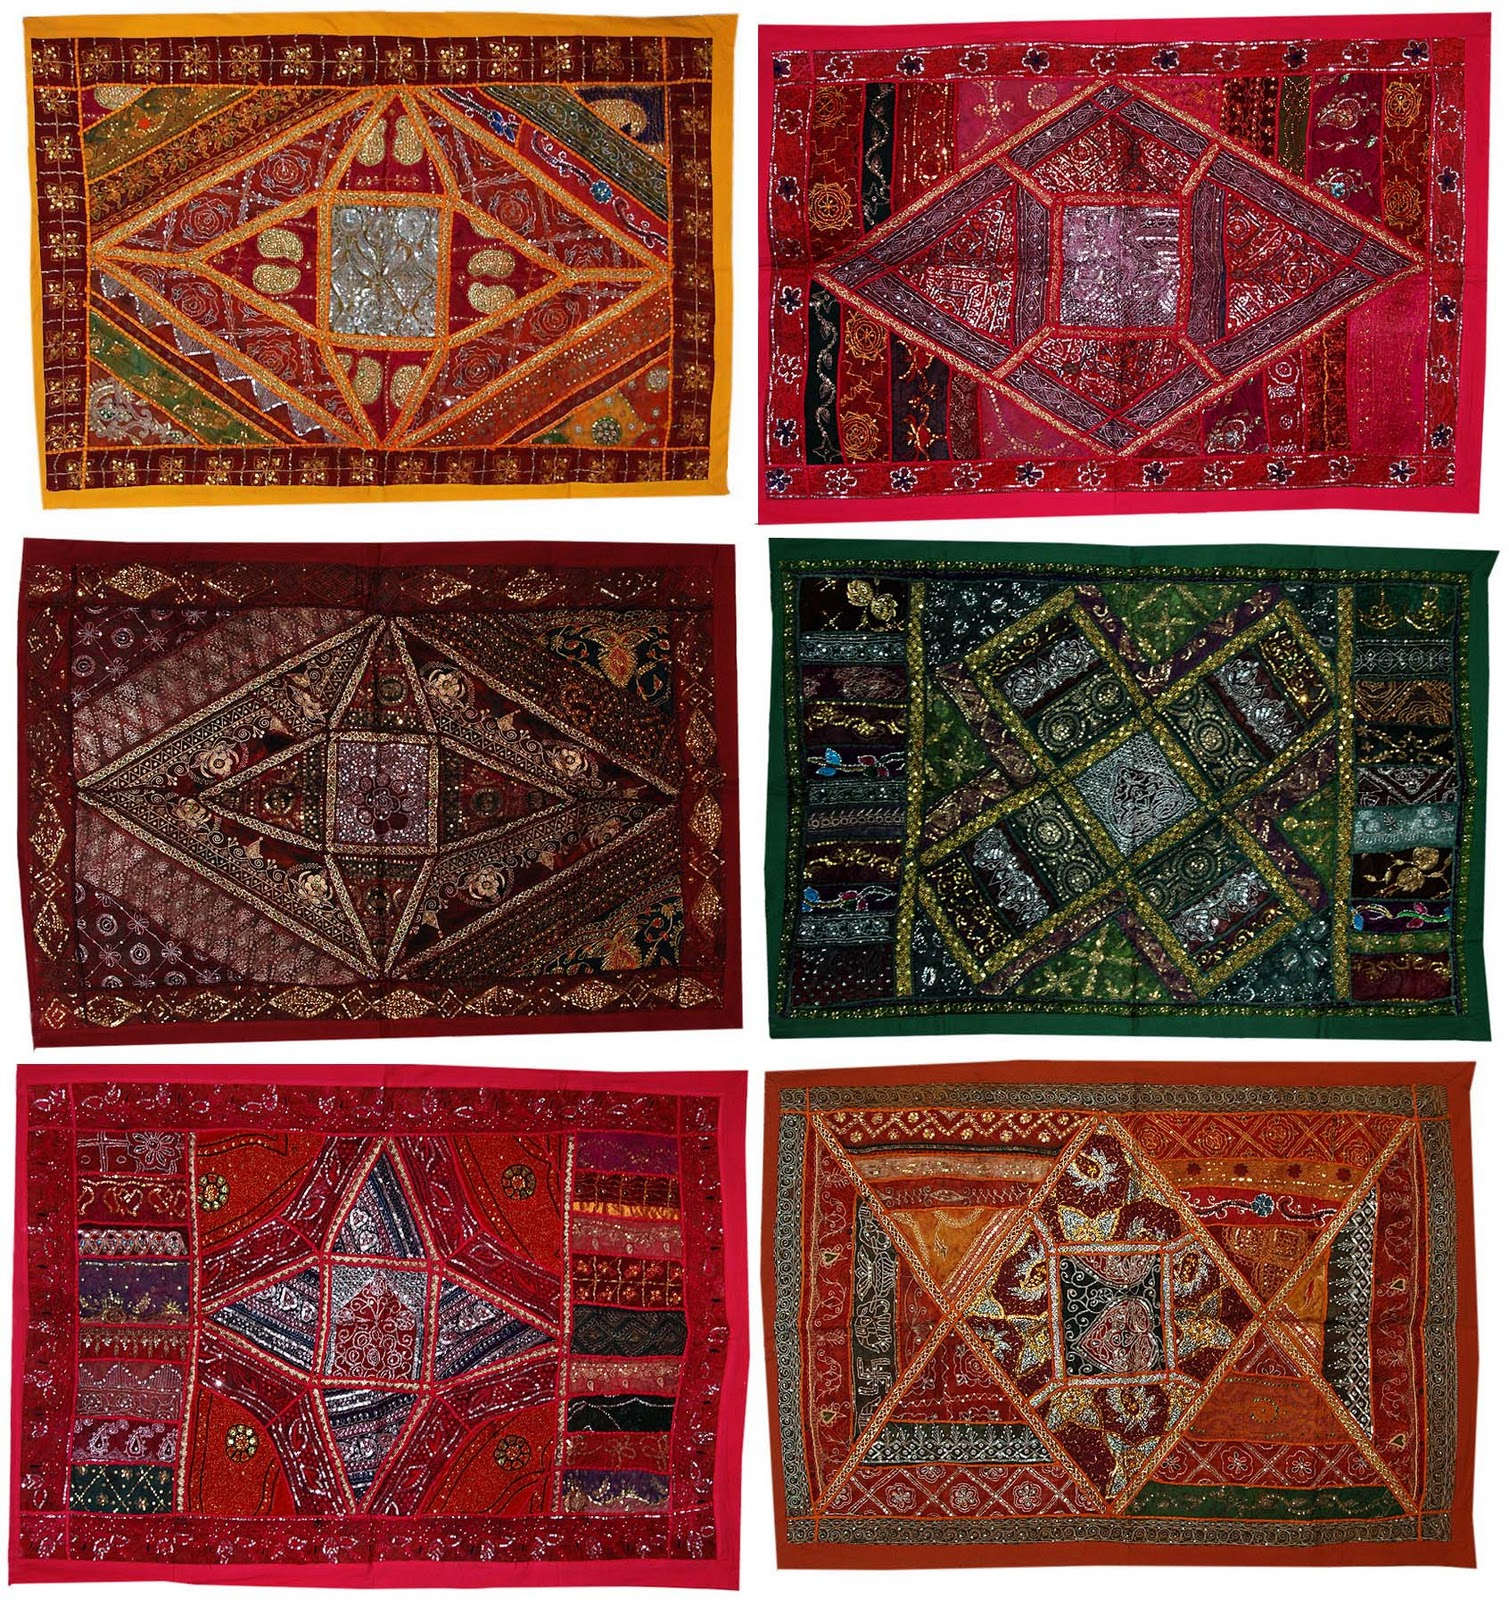 Comindian Wall Hanging Designs : indian wall hangings indian wall tapestry handmade wall hangings from ...